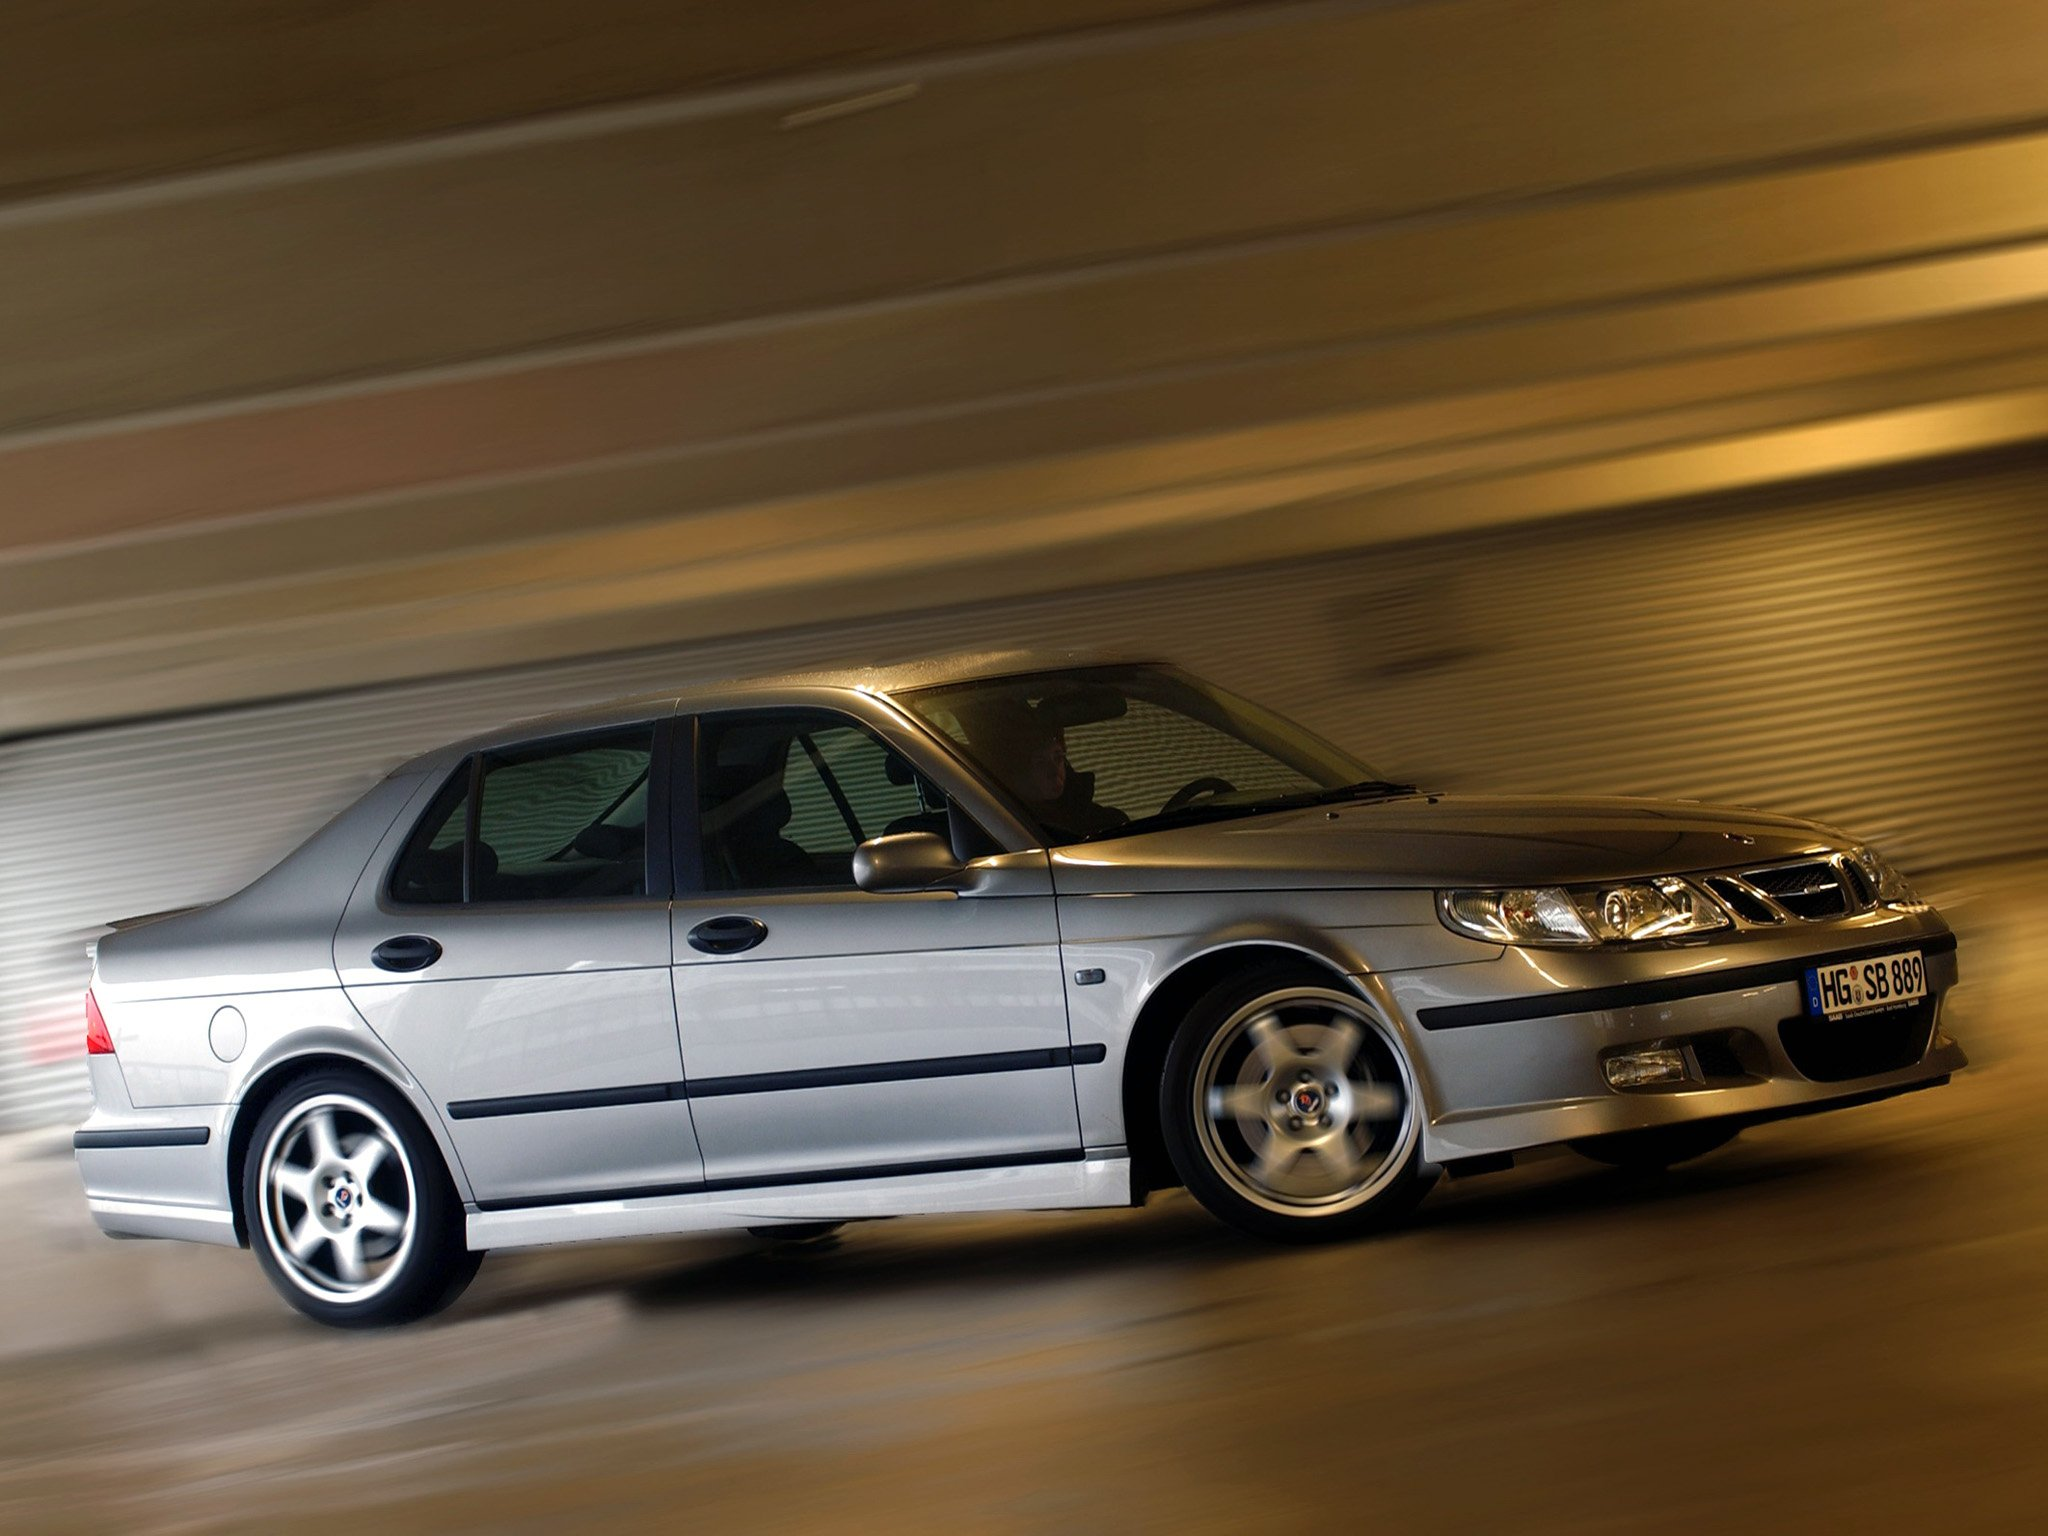 2005 Hirsch Saab 9 5 Aero Tuning Wallpaper 2048x1536 HD Wallpapers Download free images and photos [musssic.tk]